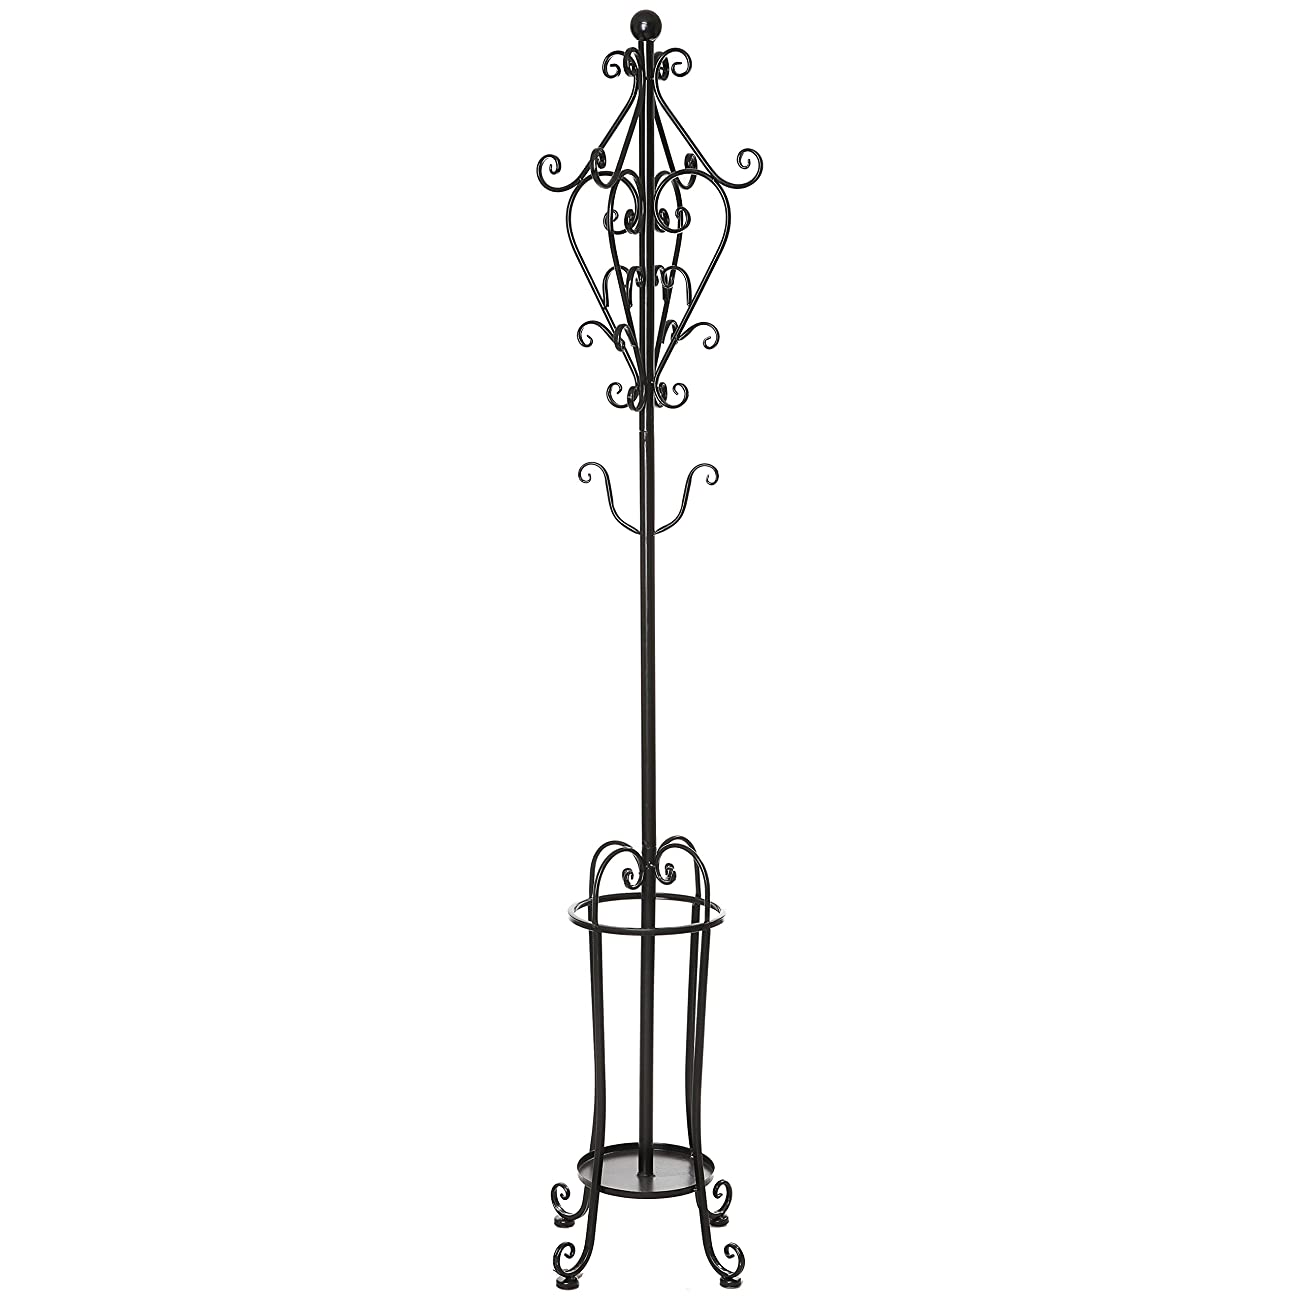 6' Freestanding Vintage Victorian Black Metal Scrollwork Coat Rack / Hat Hook Stand with Umbrella Holder 0